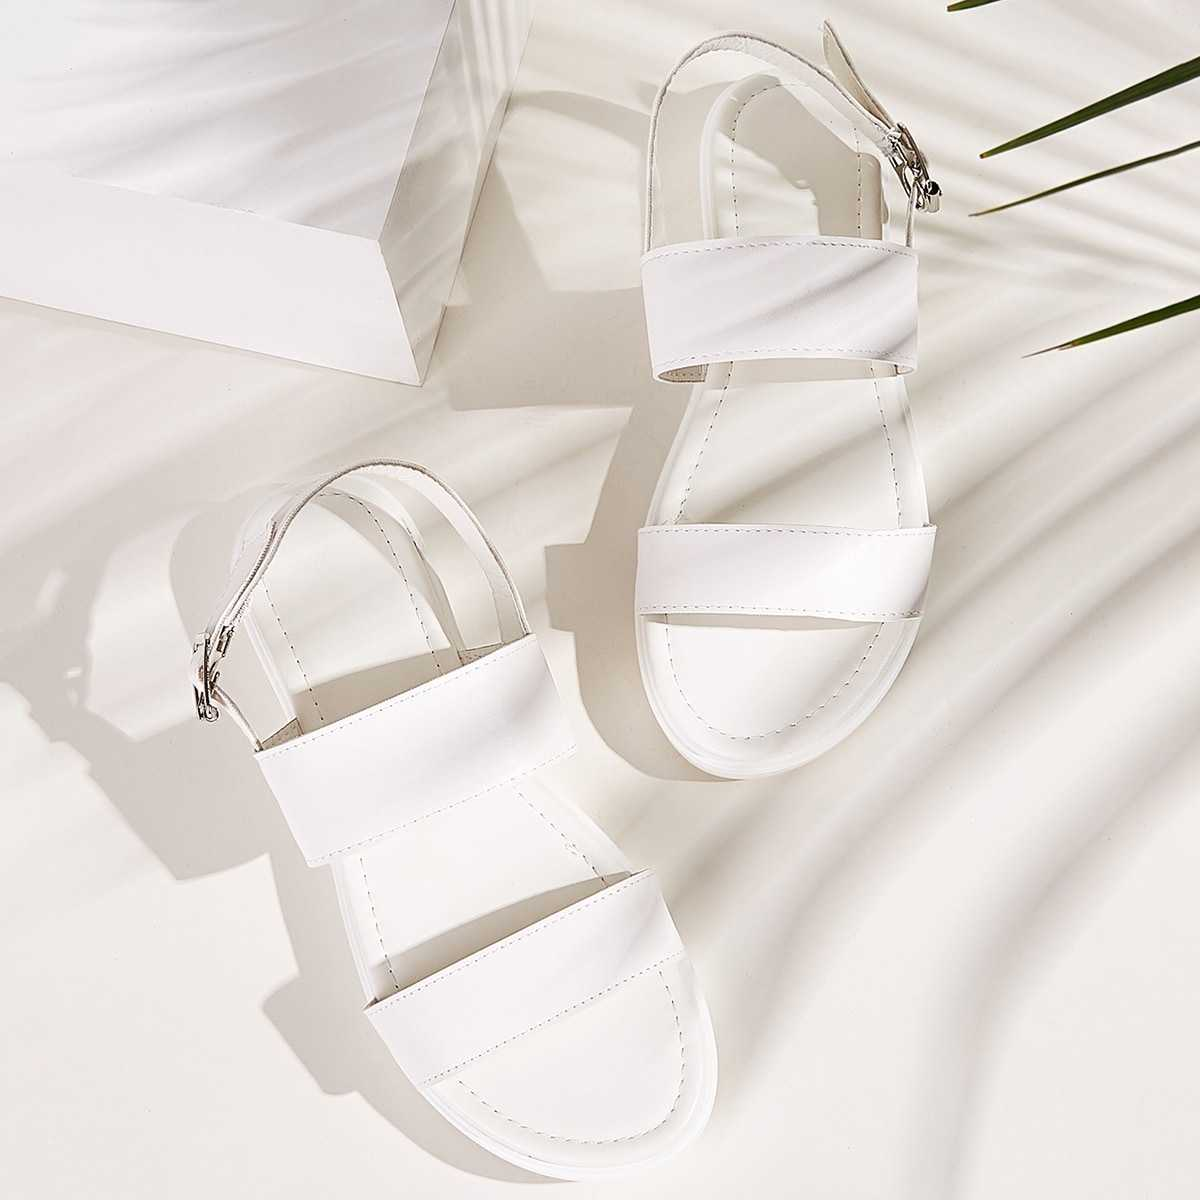 Two Part Slingback Sandals in White by ROMWE on GOOFASH